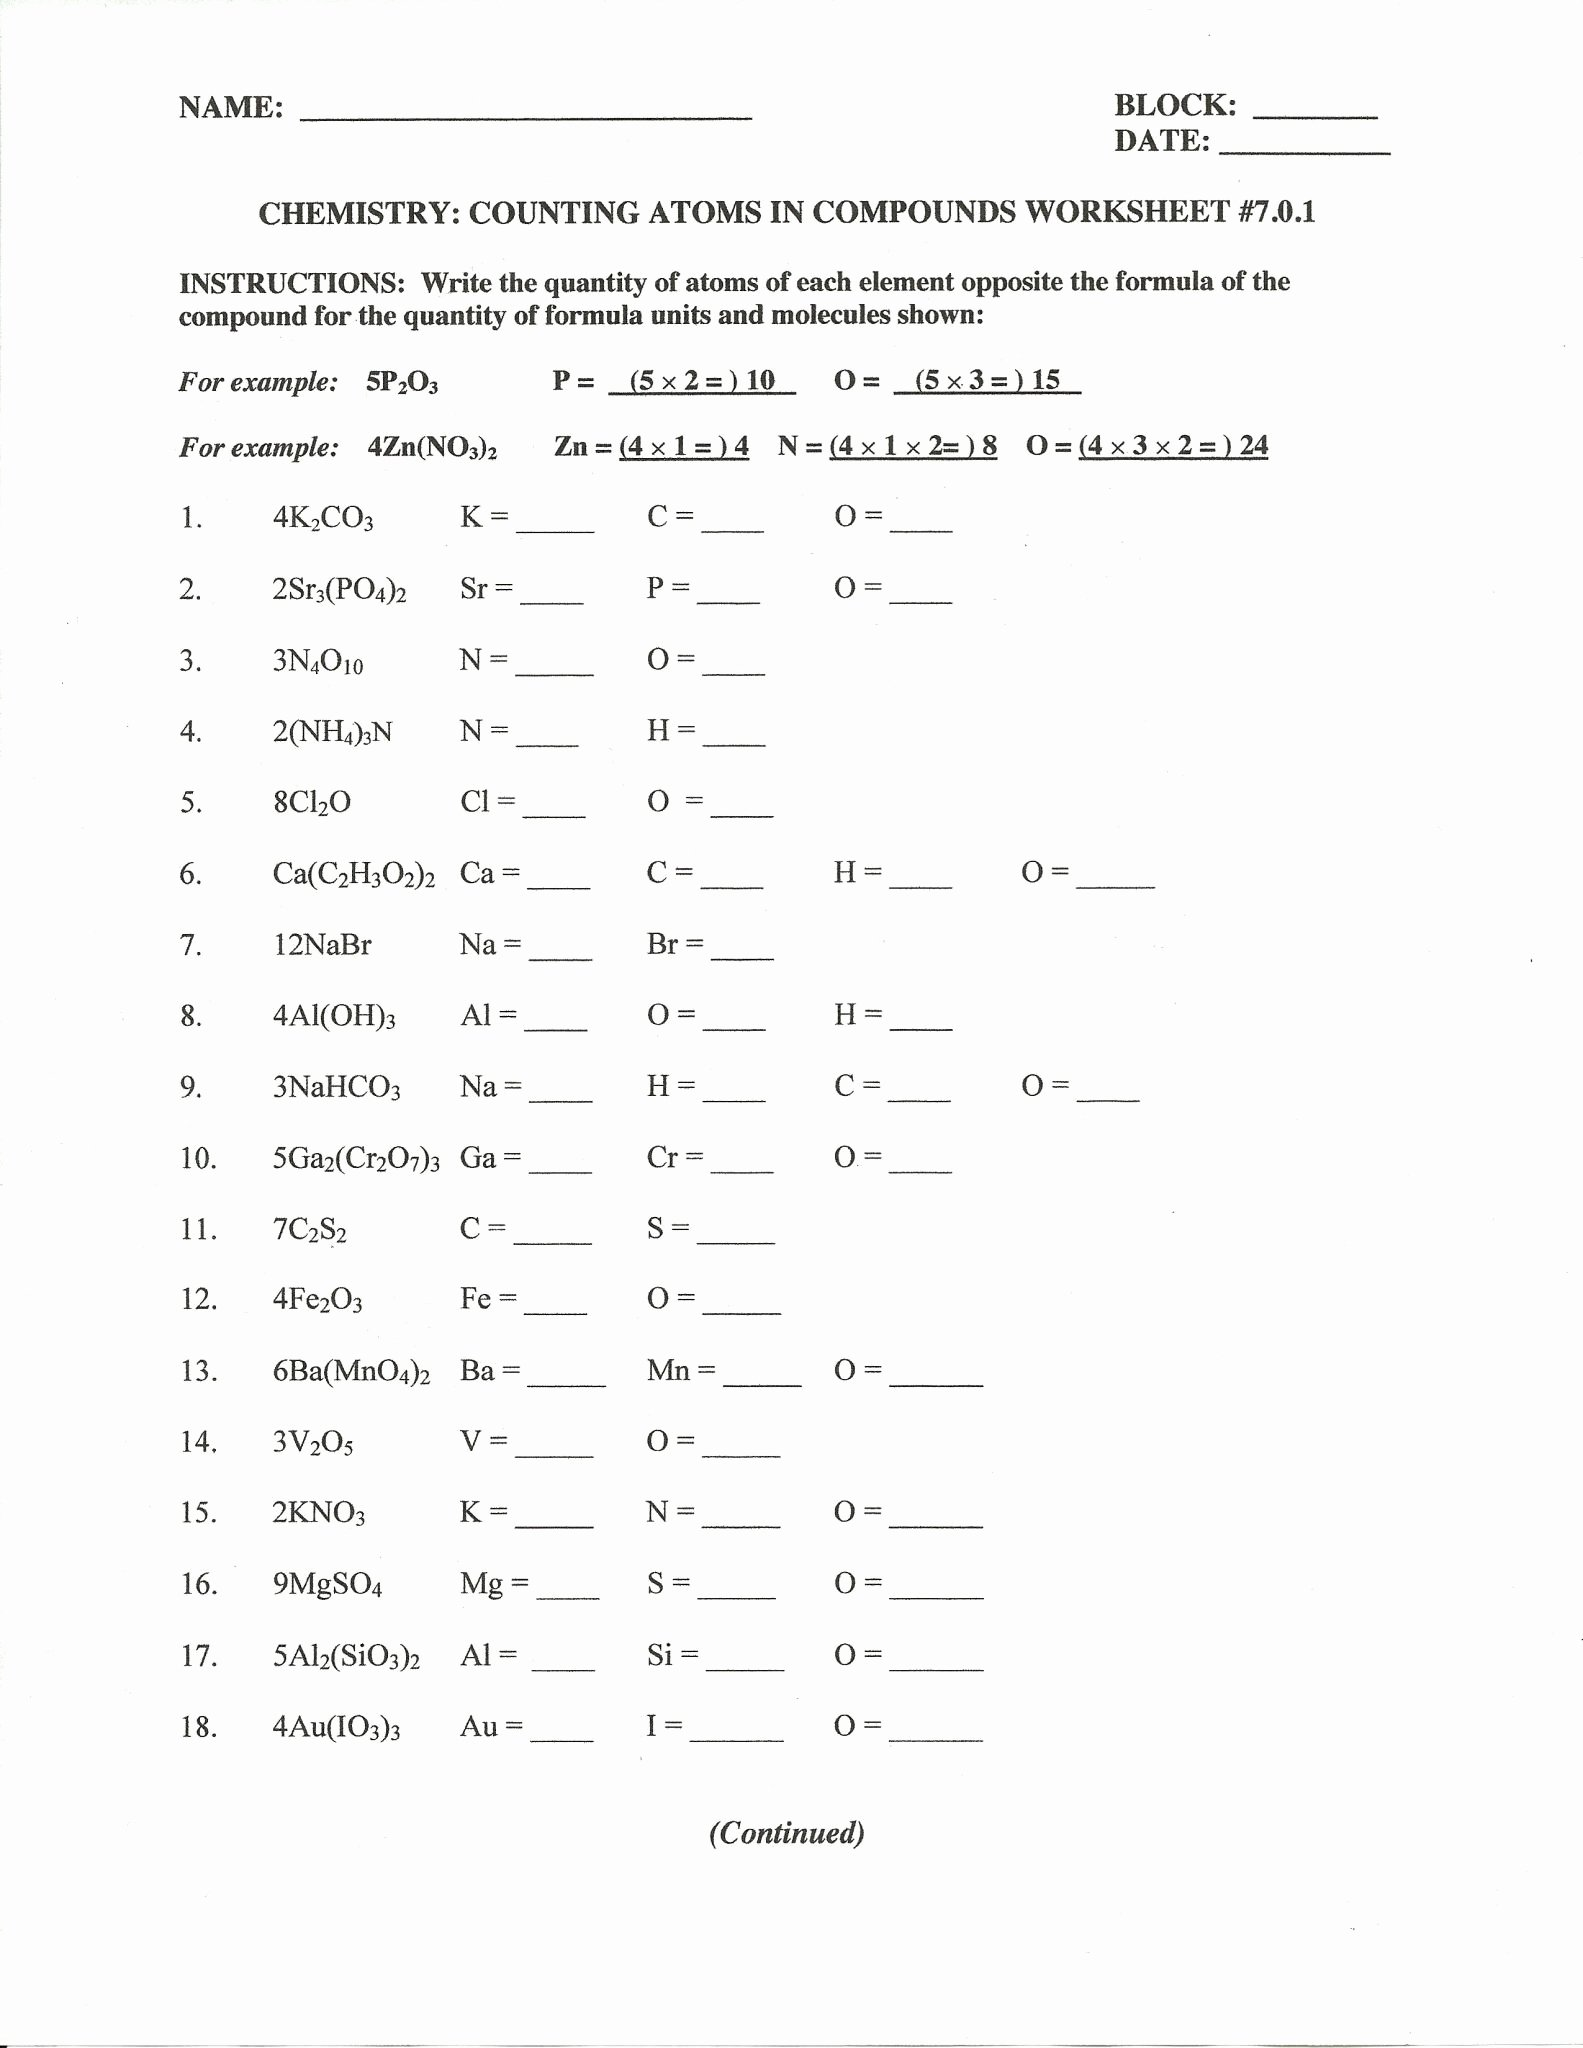 Counting atoms Worksheet Answer Key Awesome Counting atoms Worksheet Answers